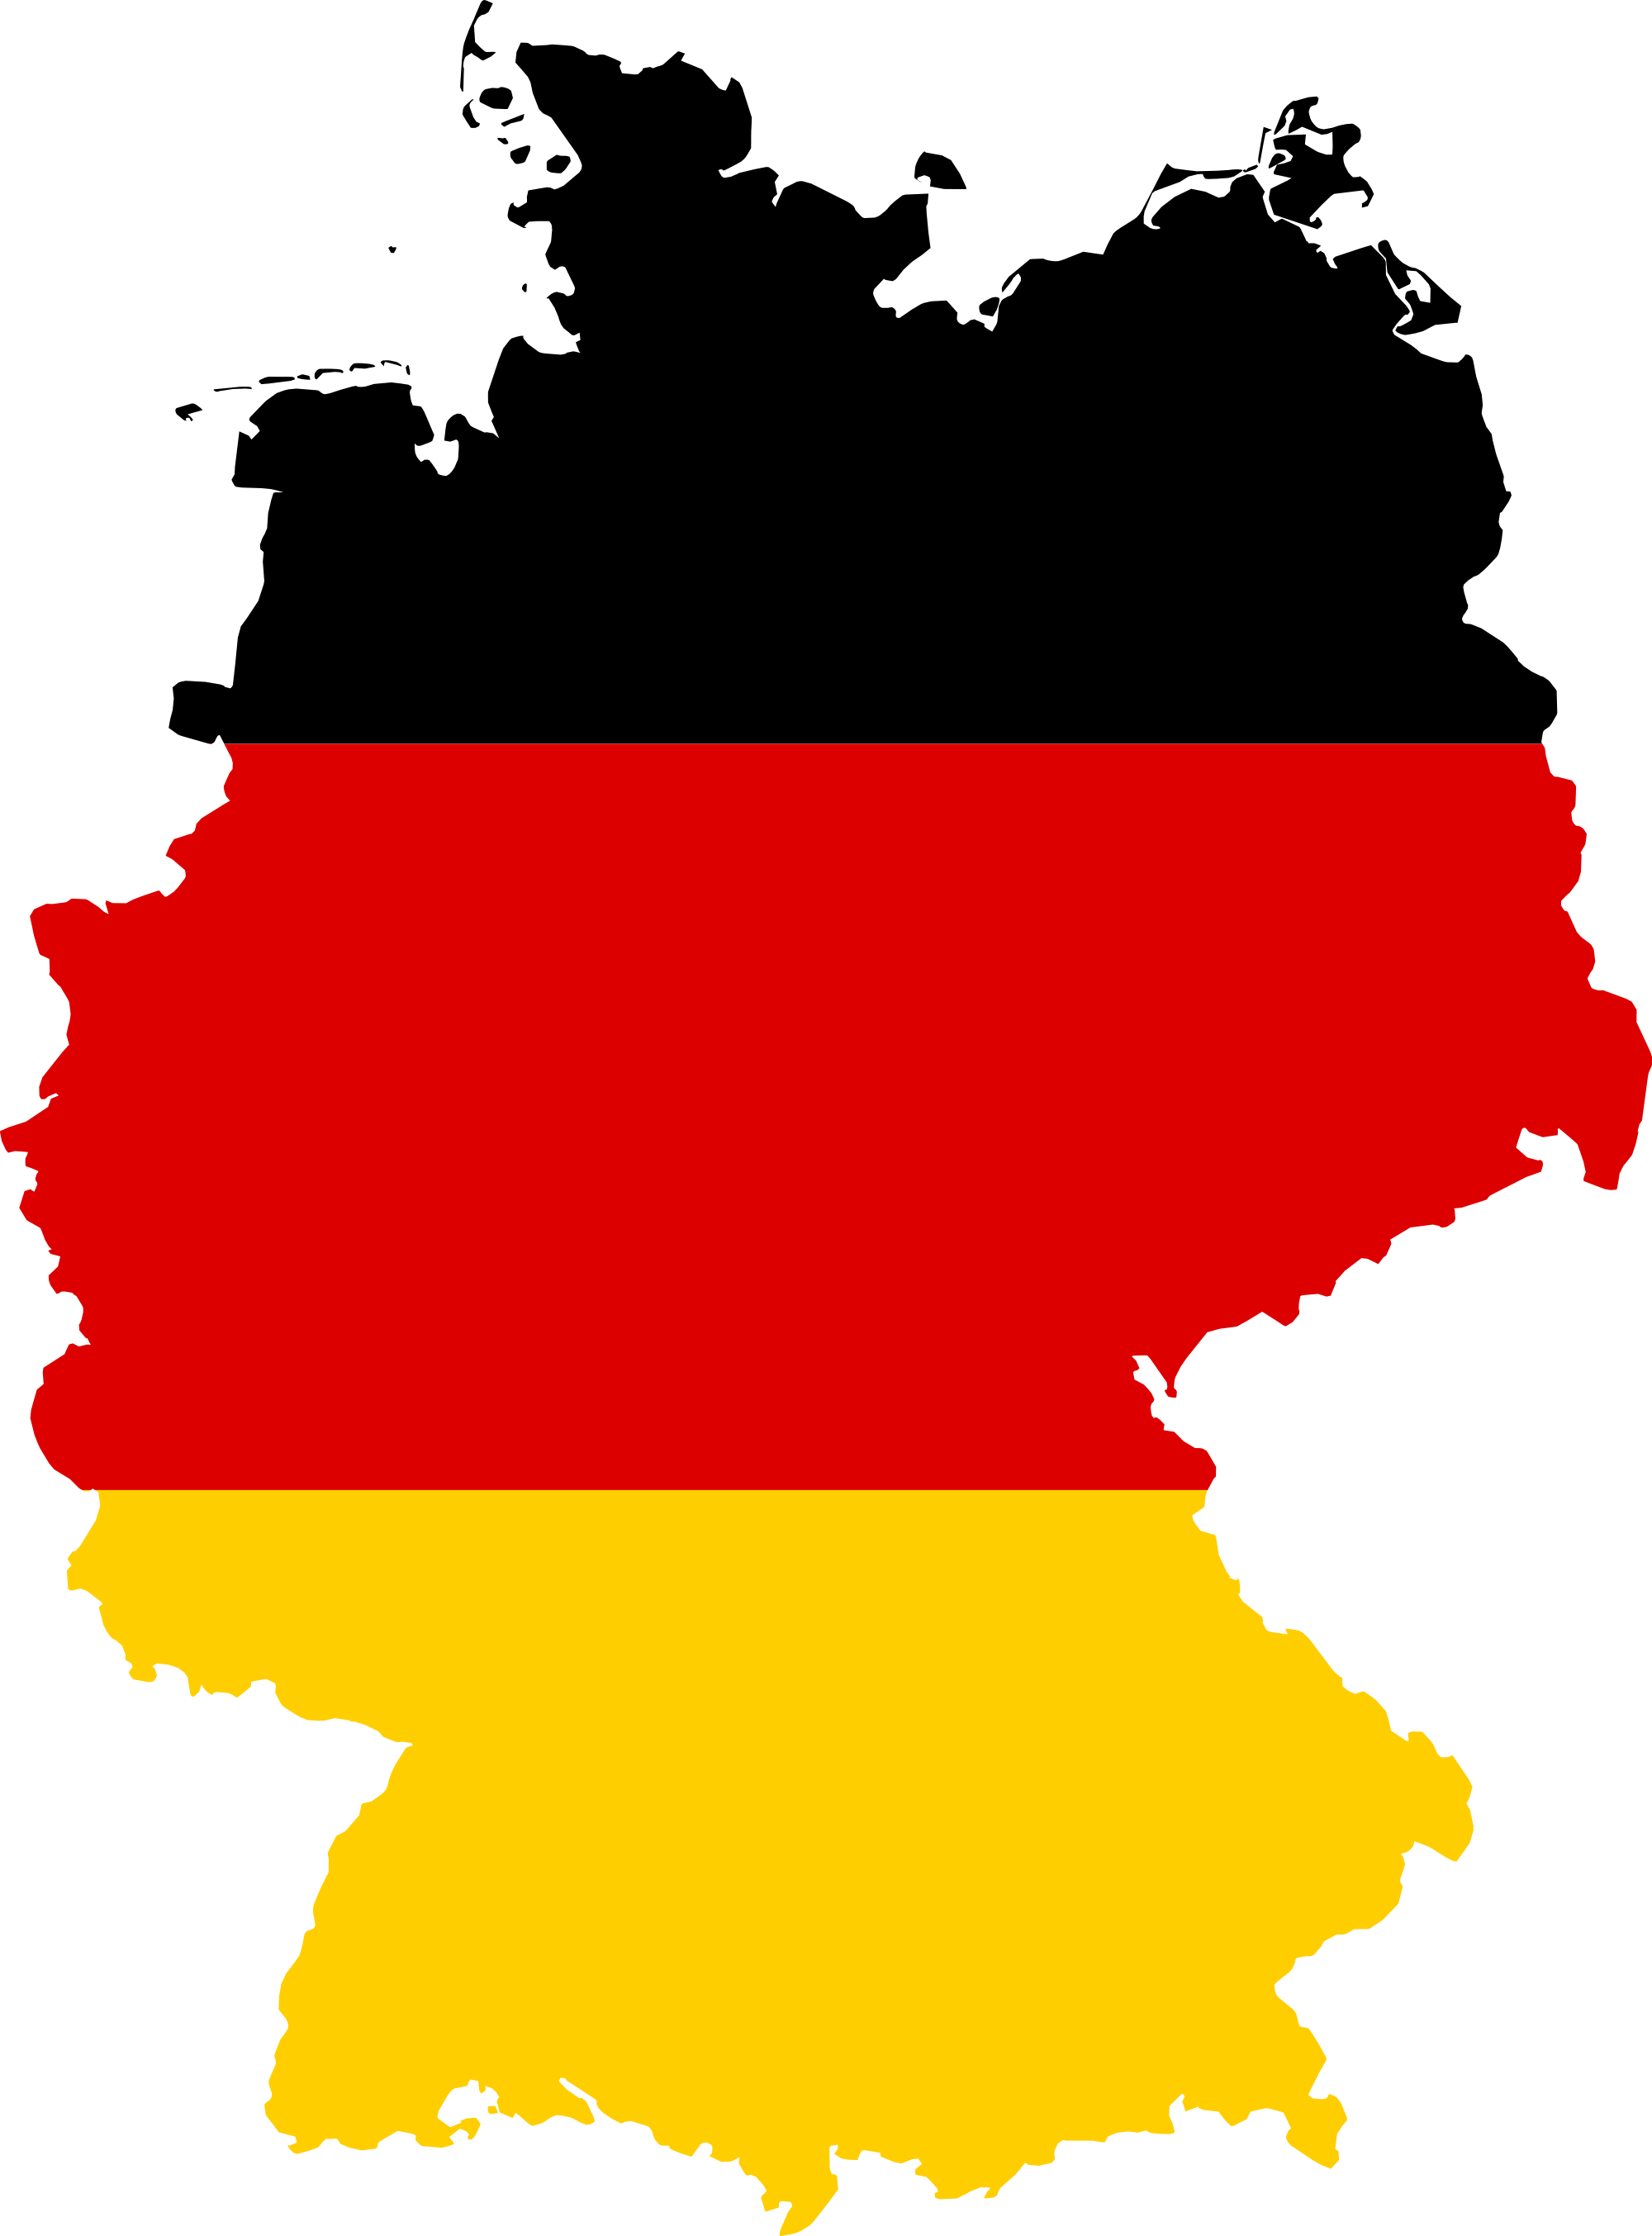 Yellow germany, clip art, west germany, world map #48874.